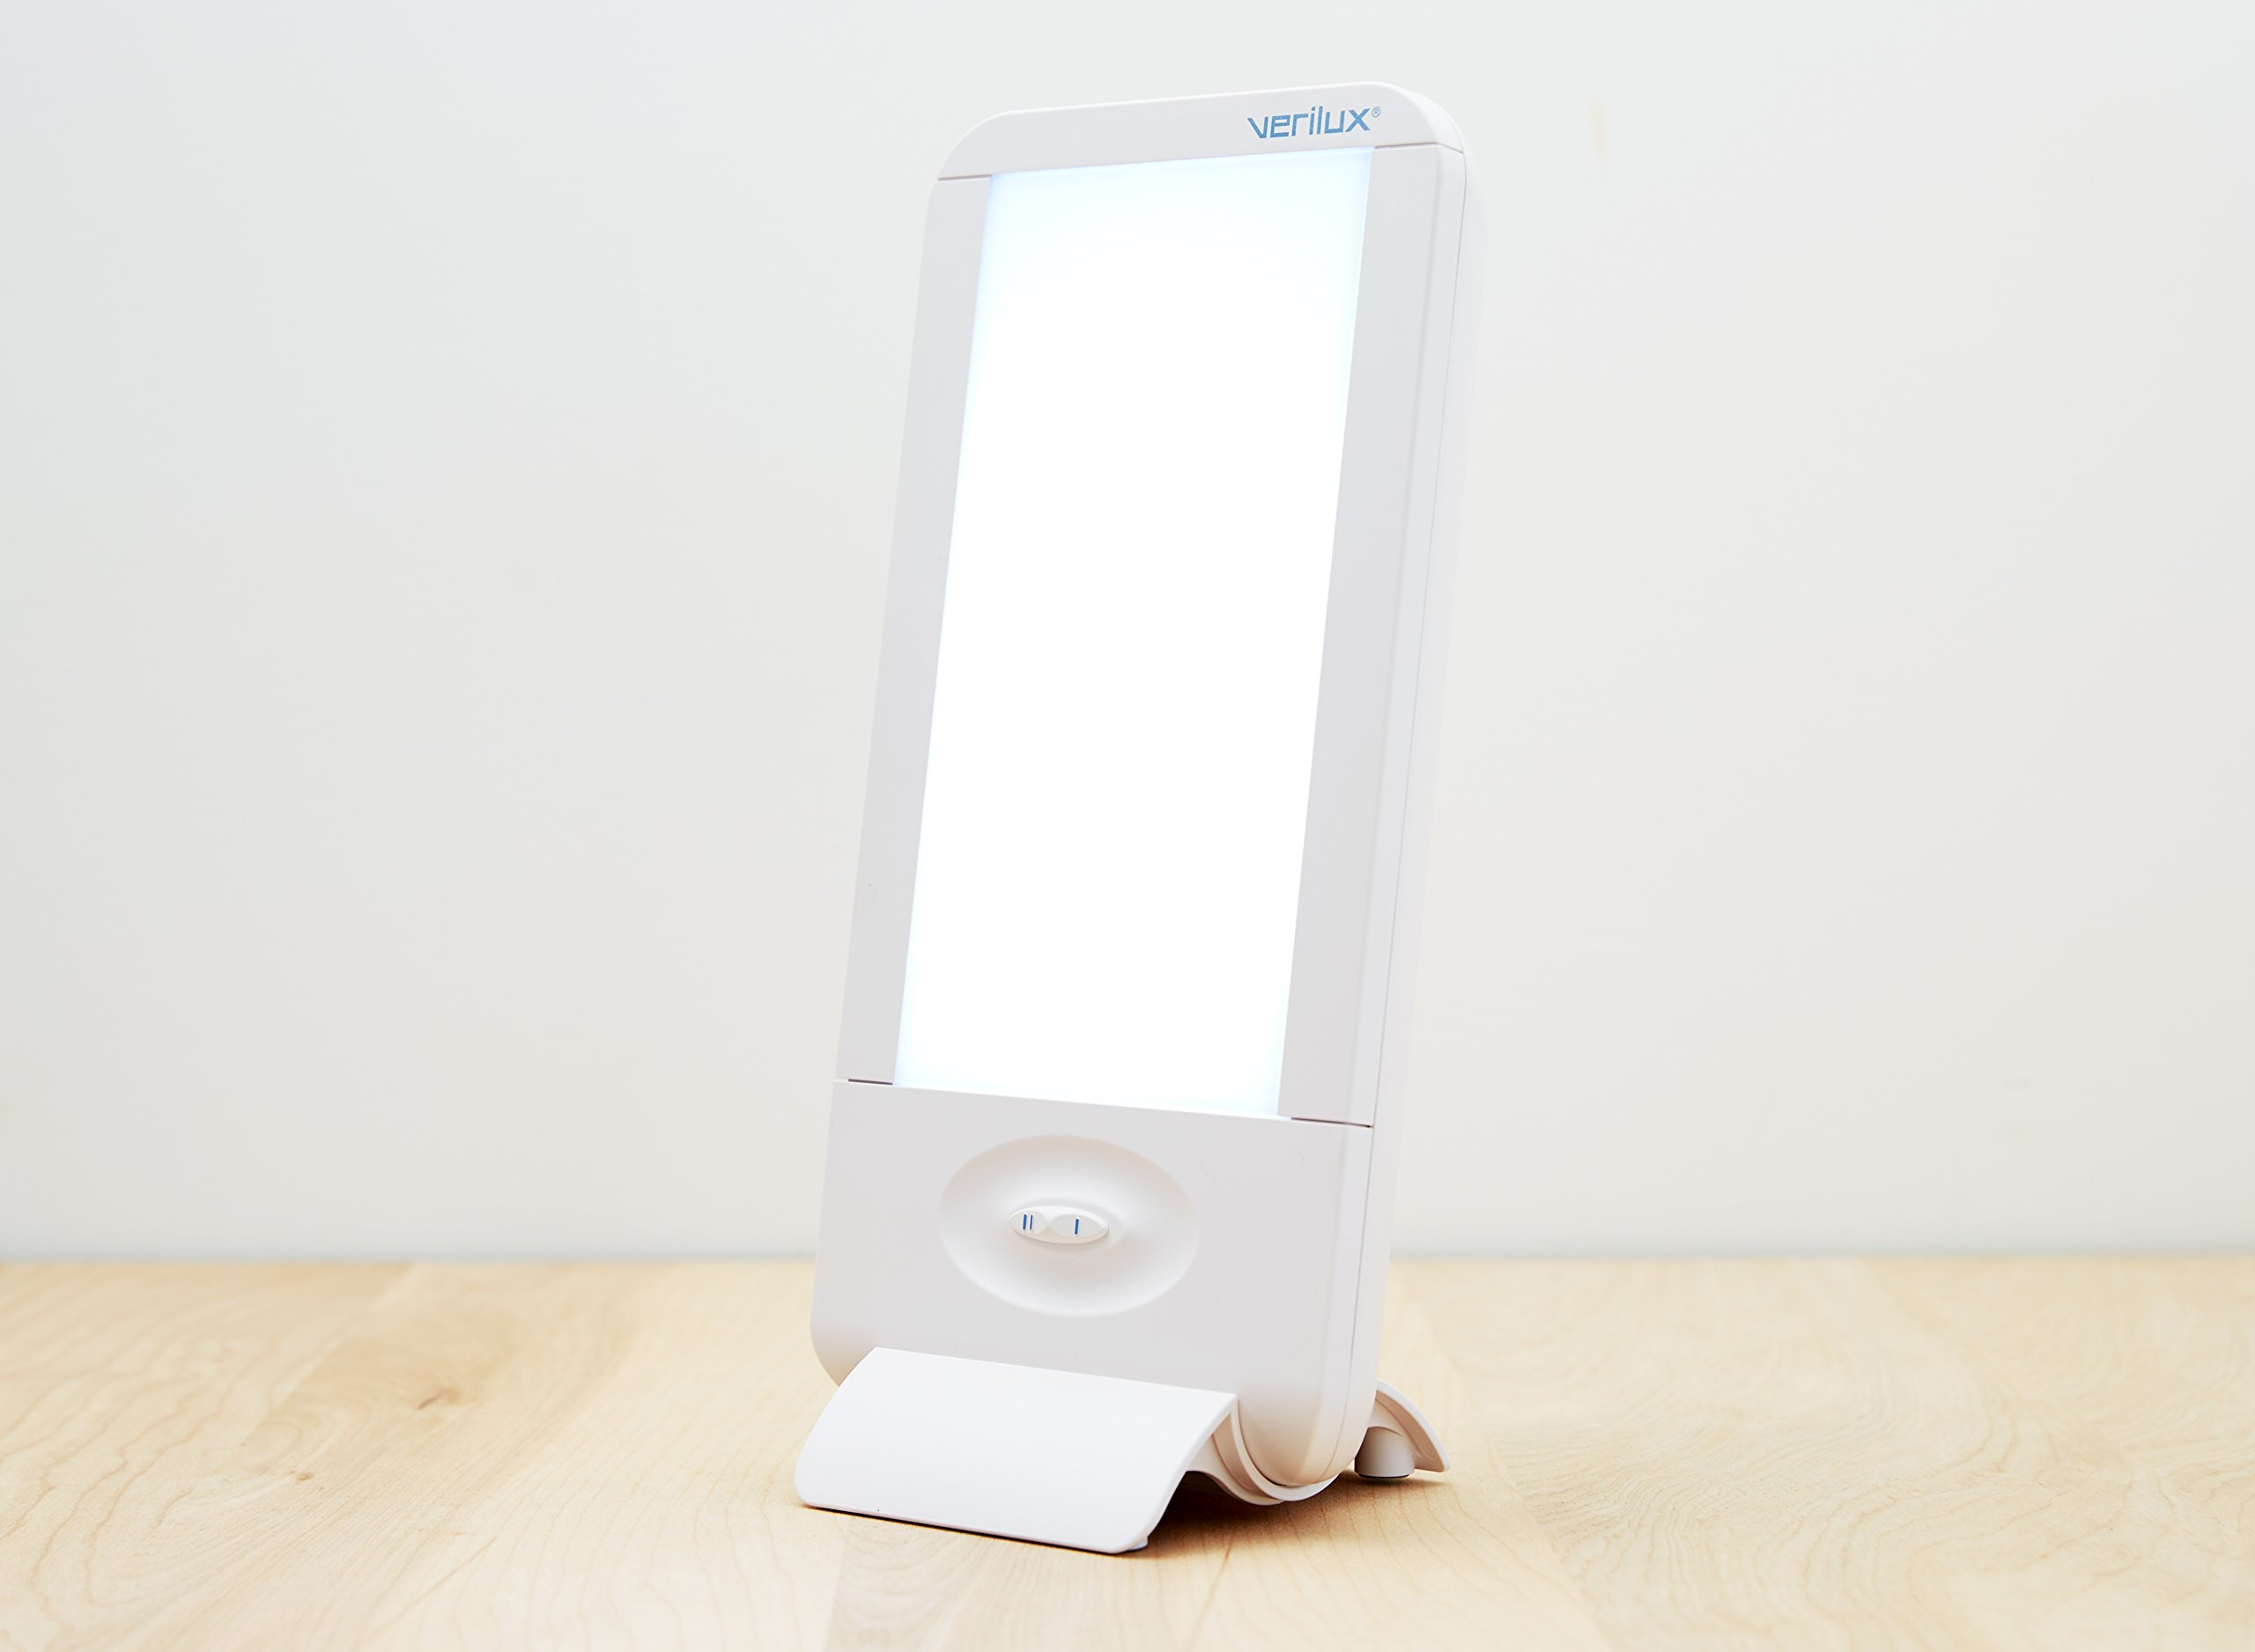 Verilux HappyLight Full-Size 10,000 lux Light Therapy Energy Lamp by Verilux, Inc (Image #3)